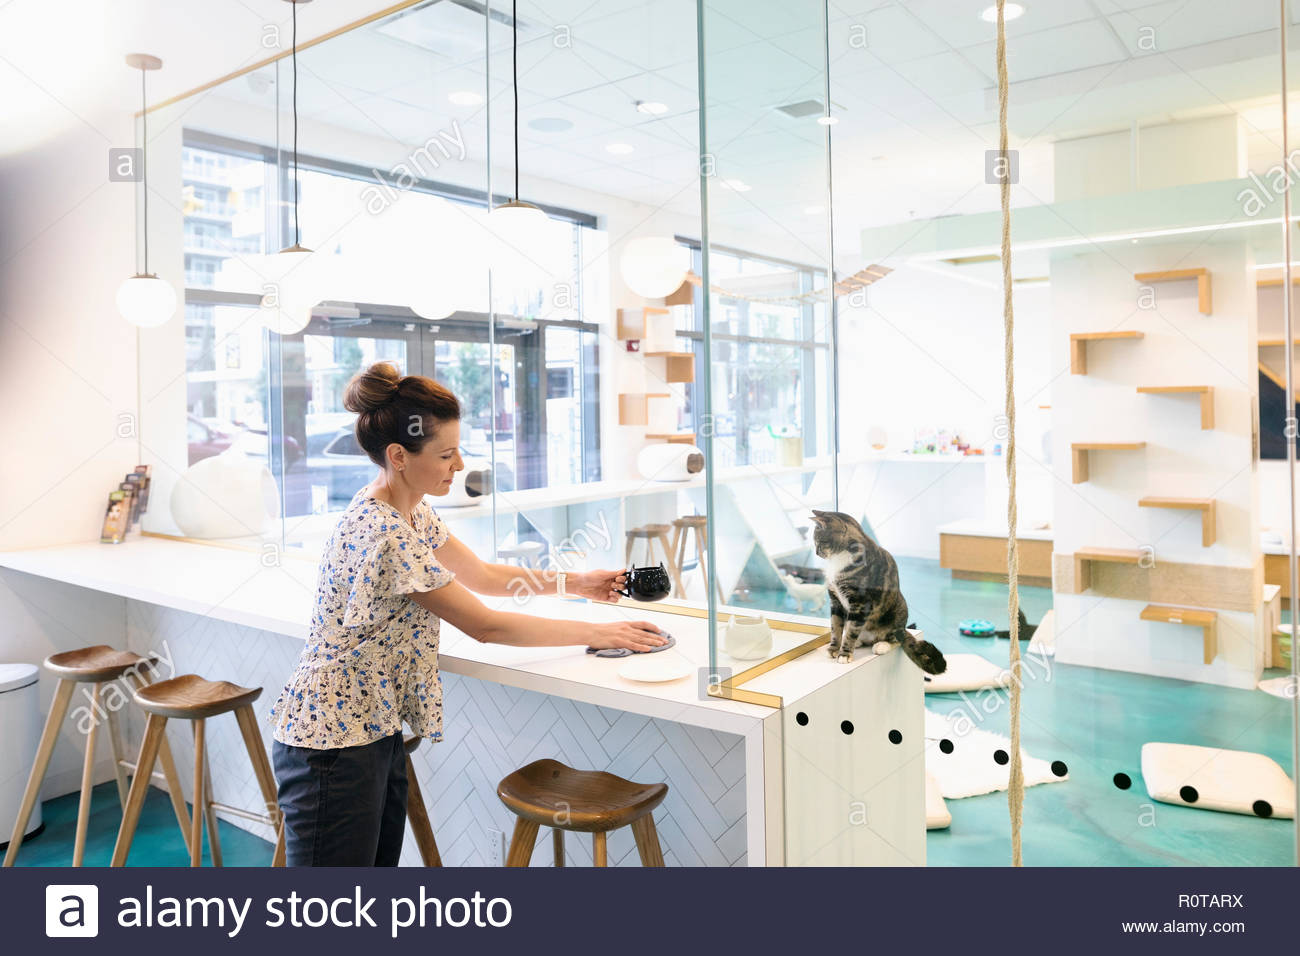 Cat Woman drinking coffee at cafe Photo Stock